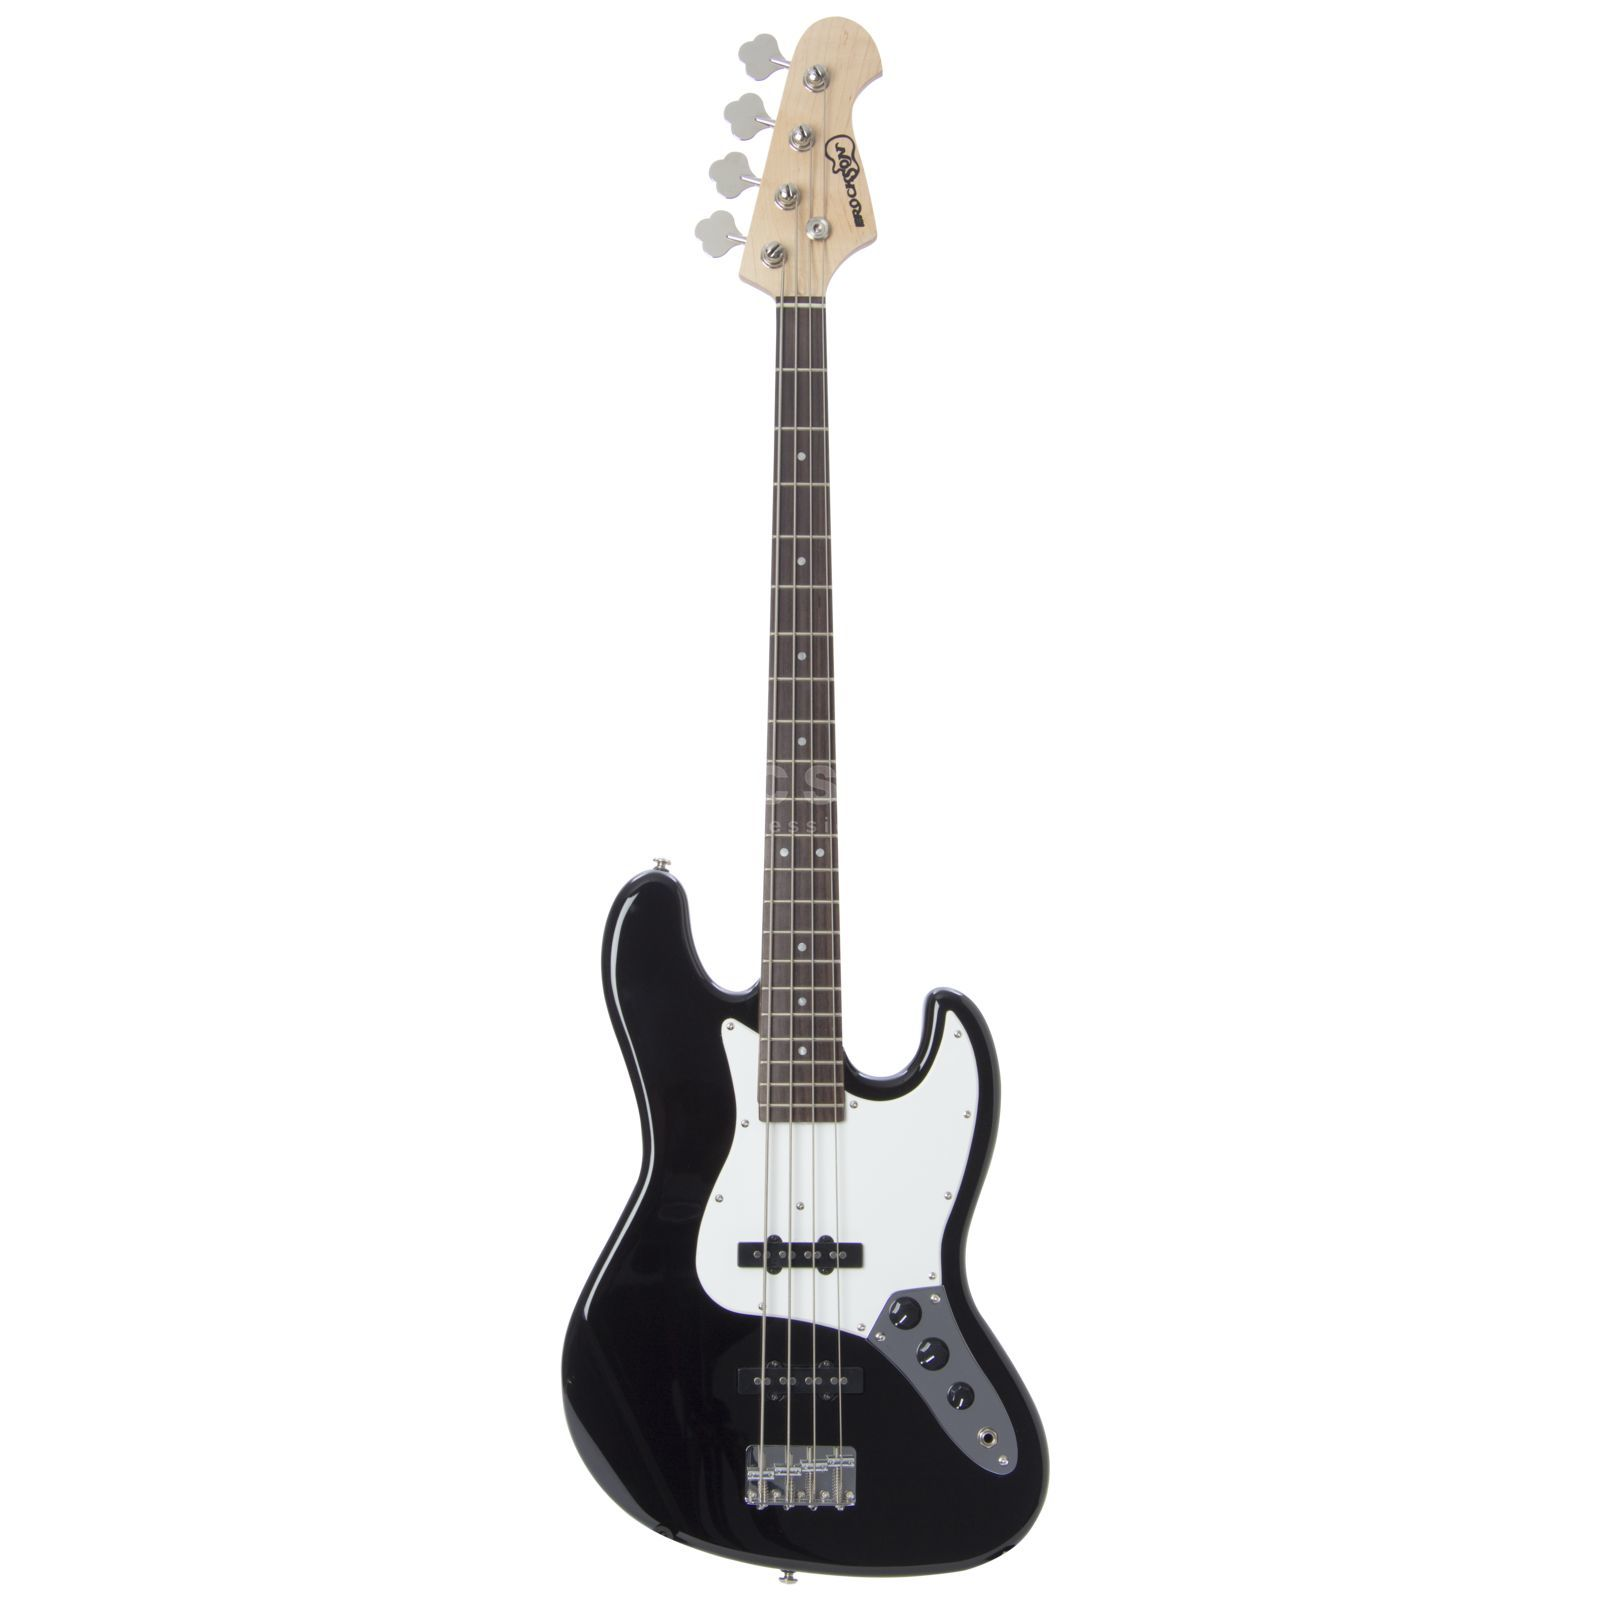 Rockson R-JB99 BK 4-String E-Bass Guitar, Black High gloss Product Image